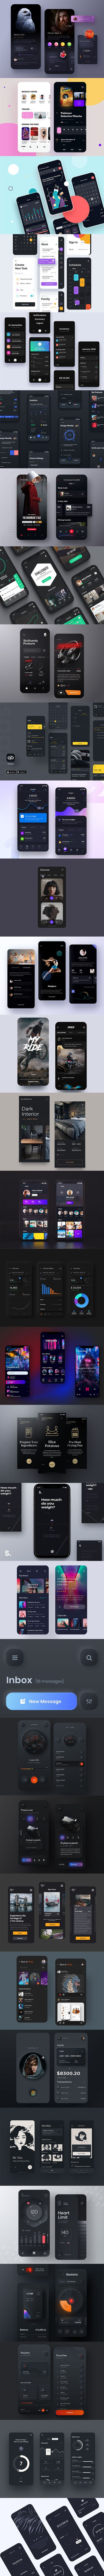 33 Dark Mode App UI Designs for Inspiration